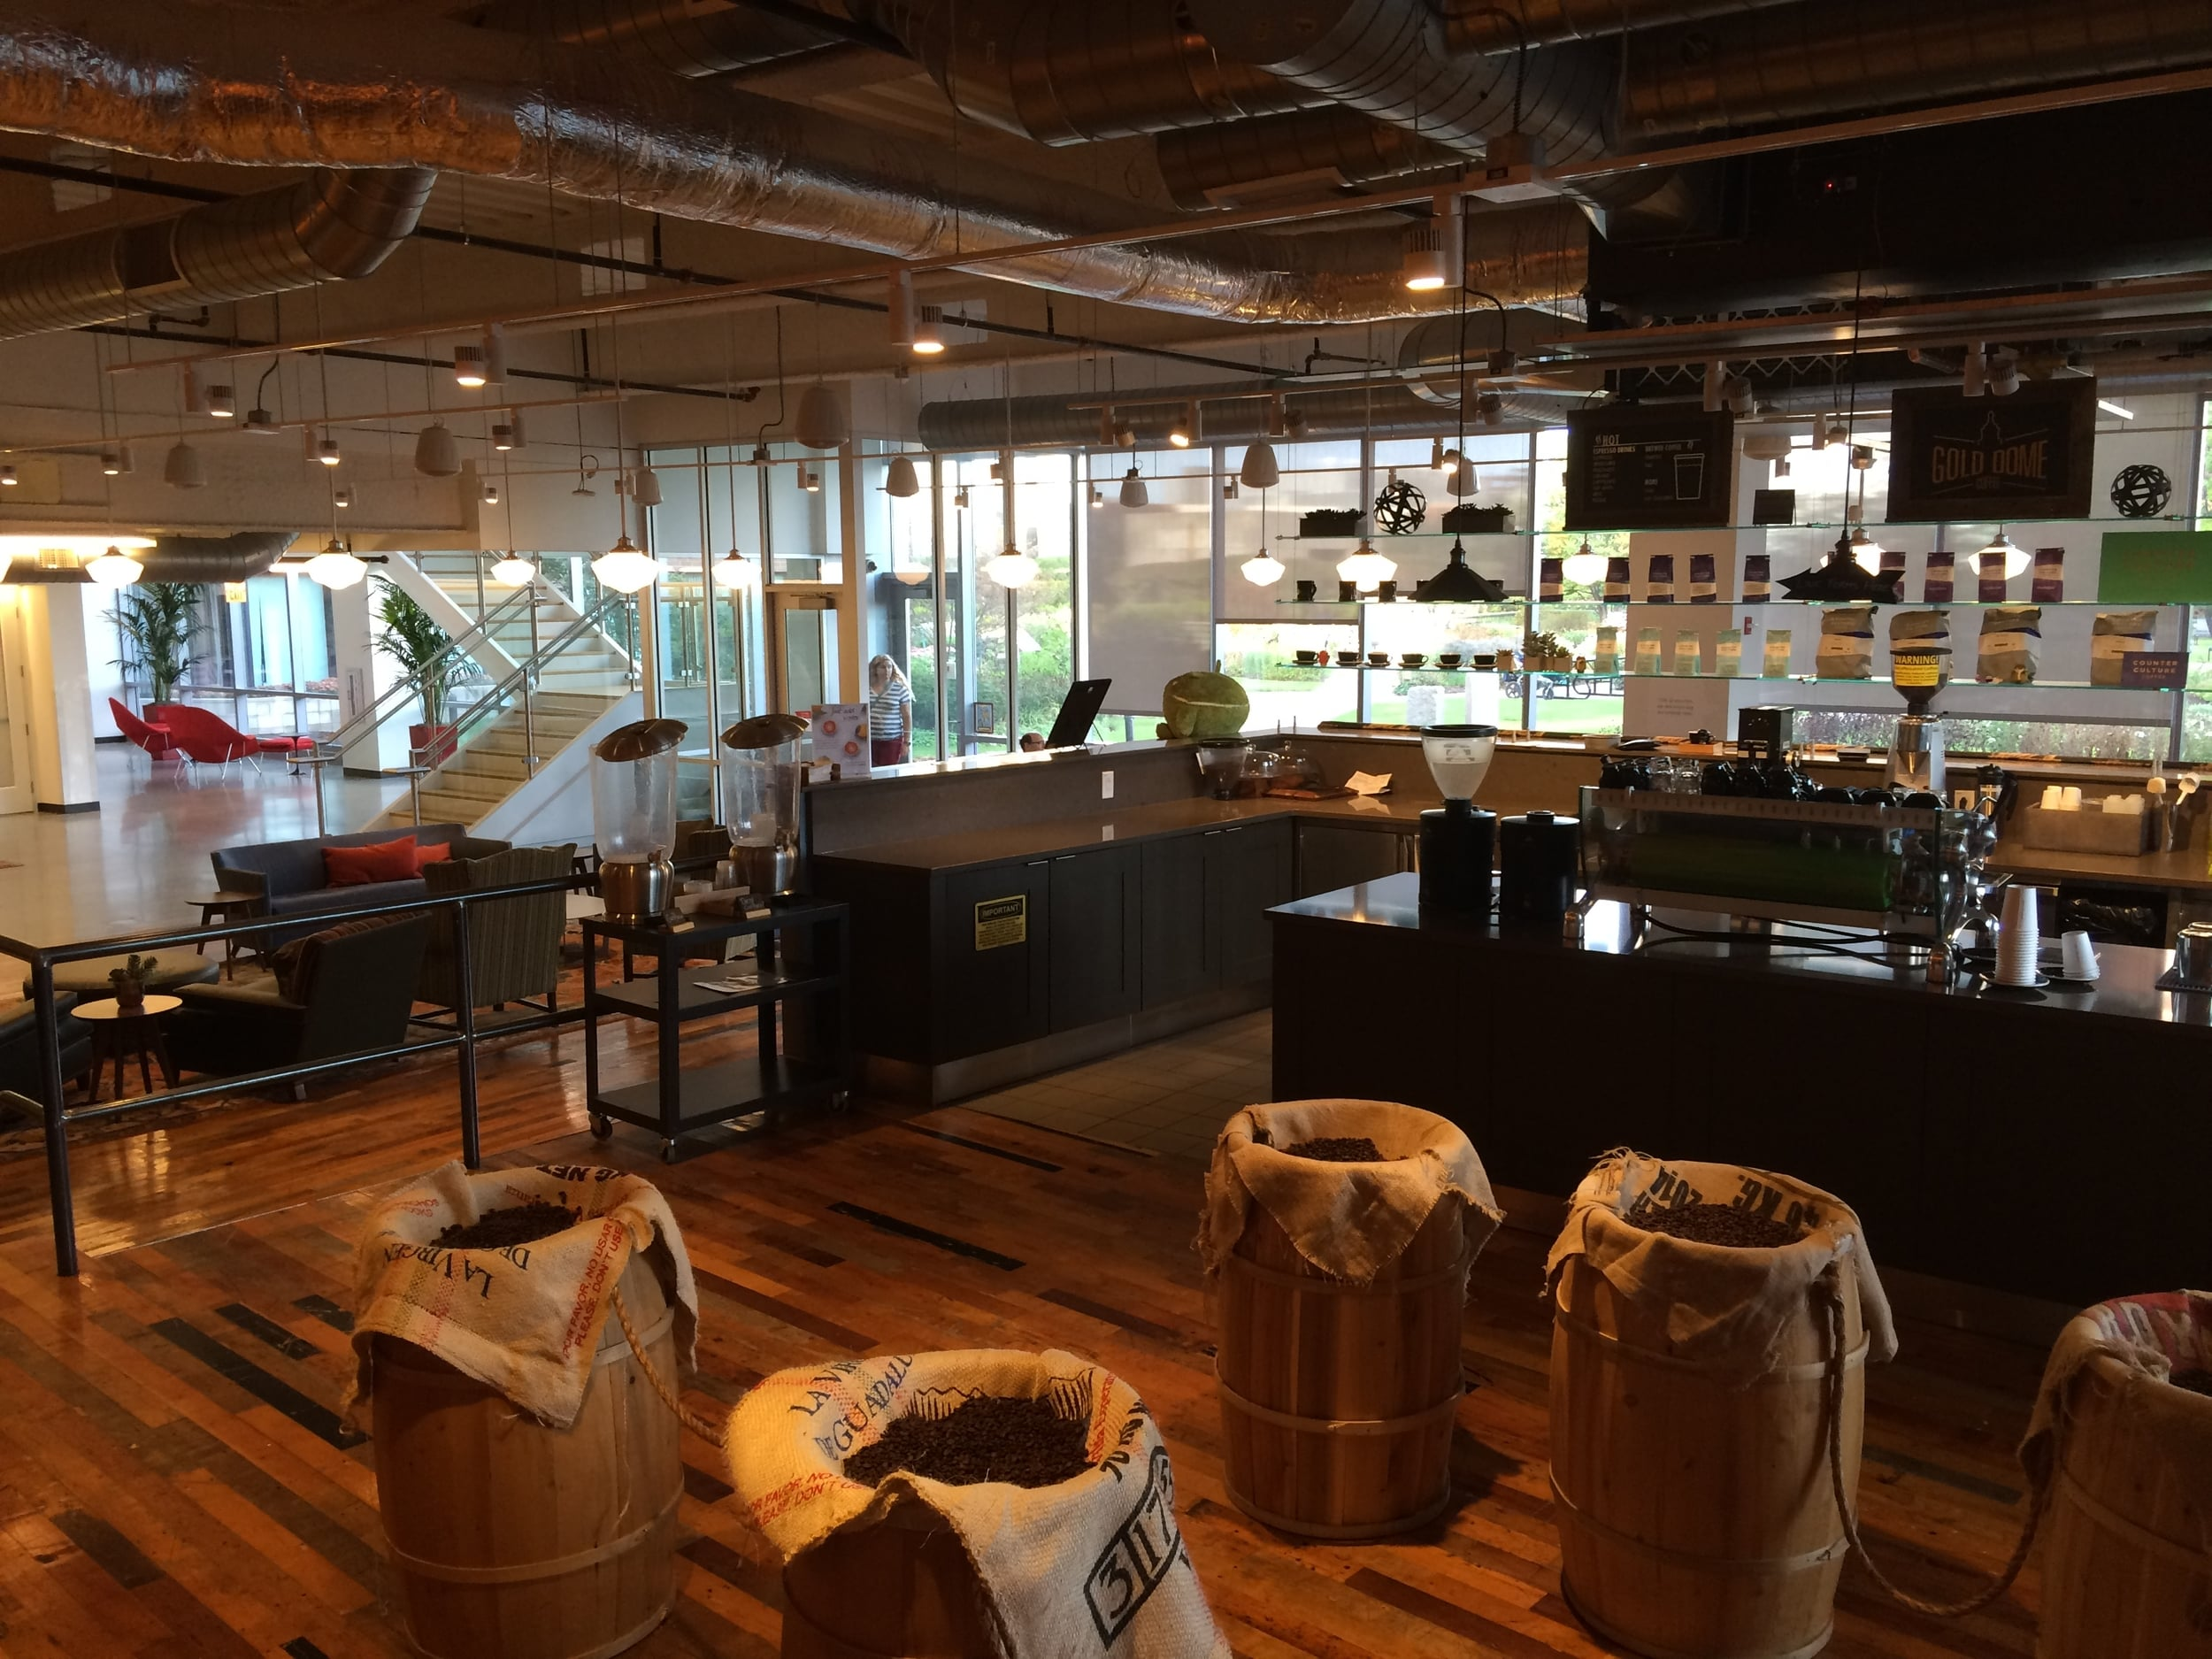 A Cafe Space in the Boston Google Office